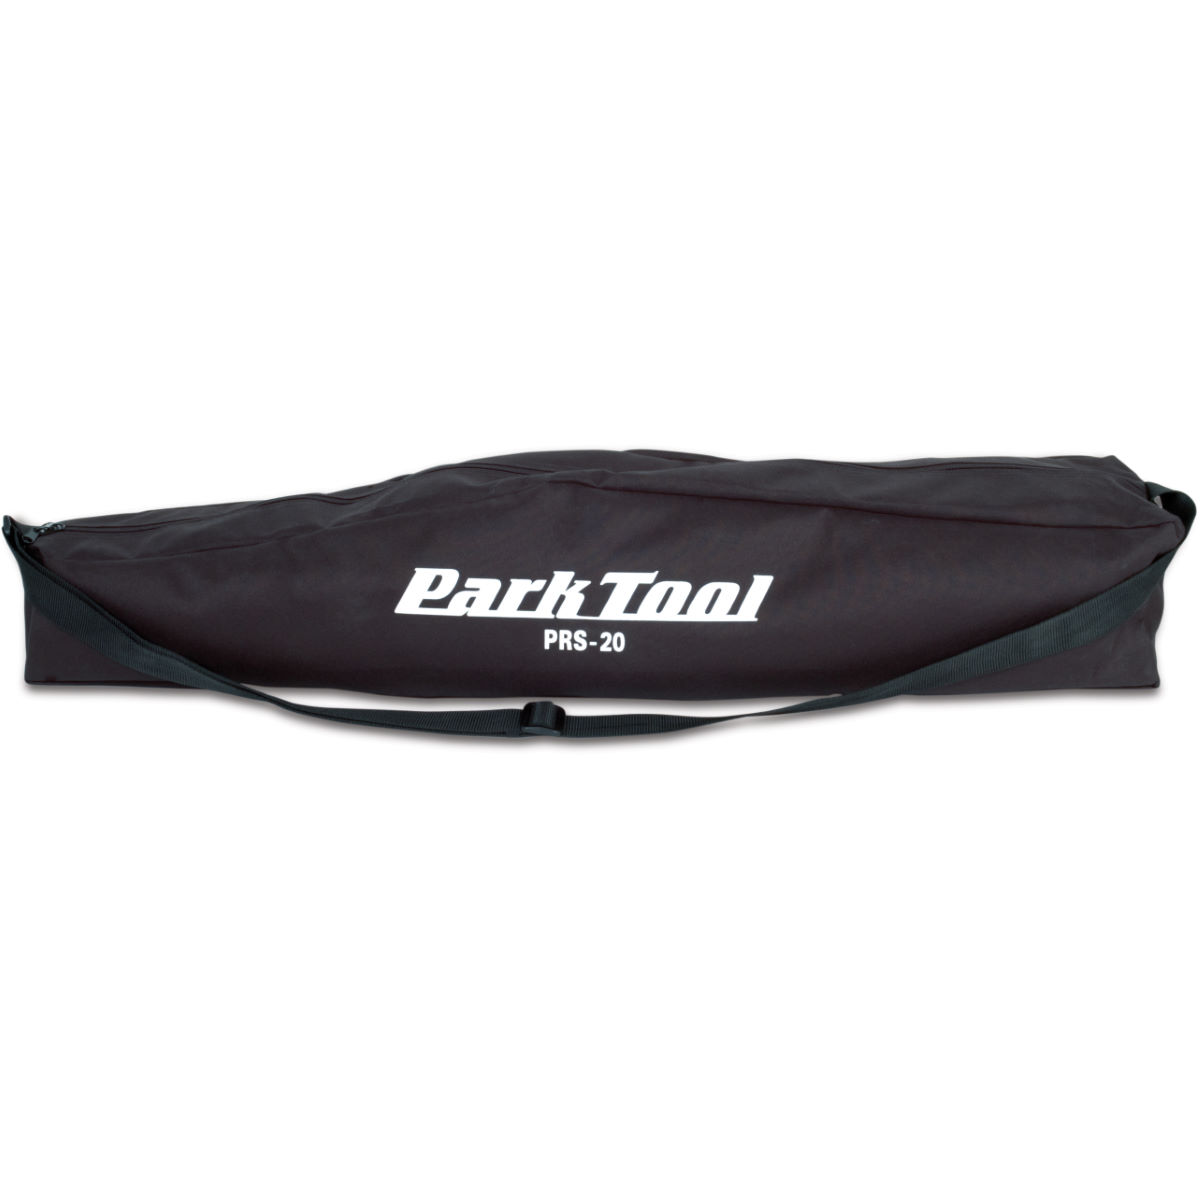 Park Tool Park Tool Travel Bag BAG20 for PRS20/21 Workstand   Workstands